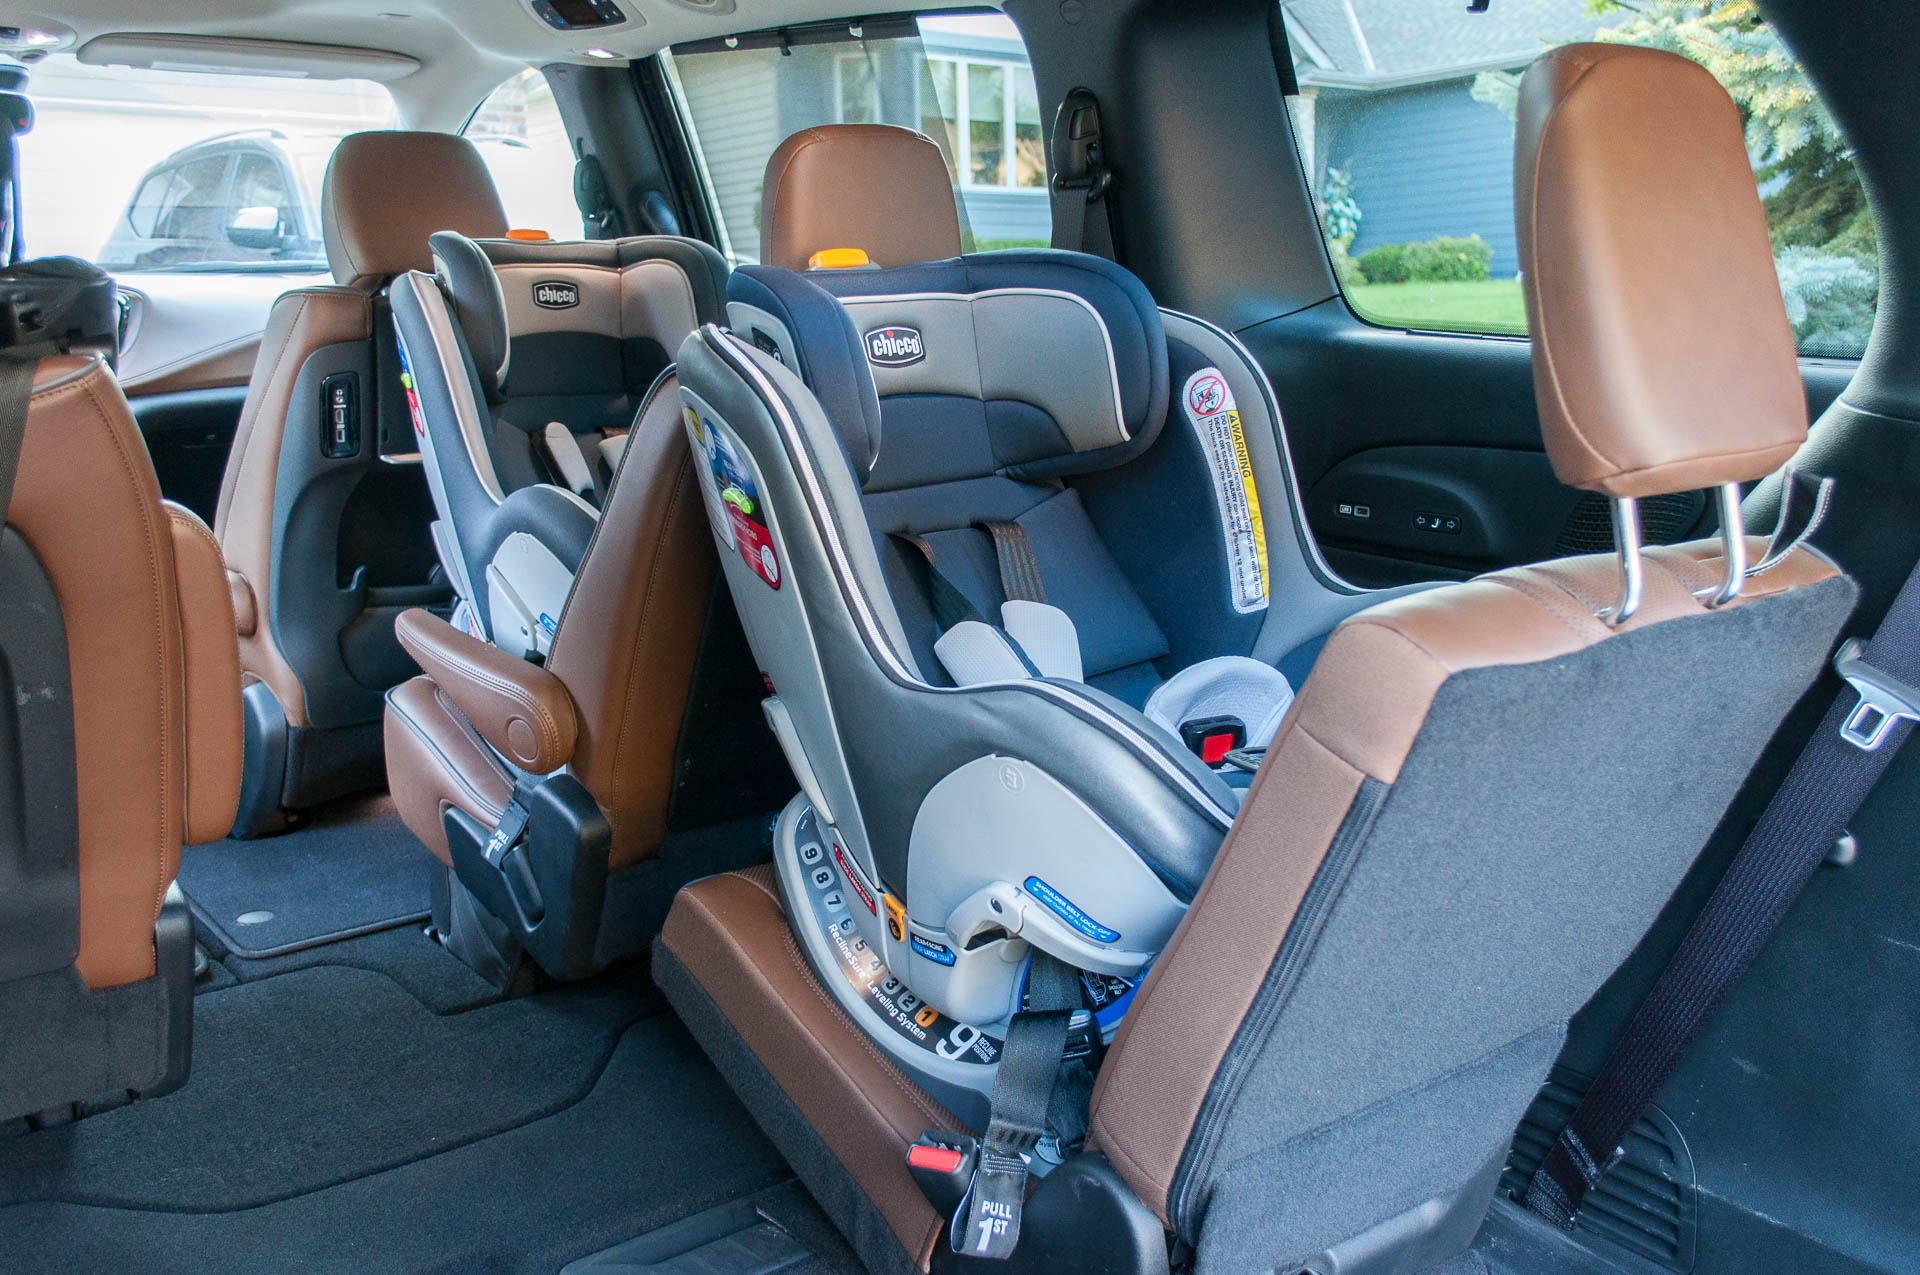 Tremendous Three Car Seats Fit Perfectly In The 2019 Chrysler 300 And Camellatalisay Diy Chair Ideas Camellatalisaycom